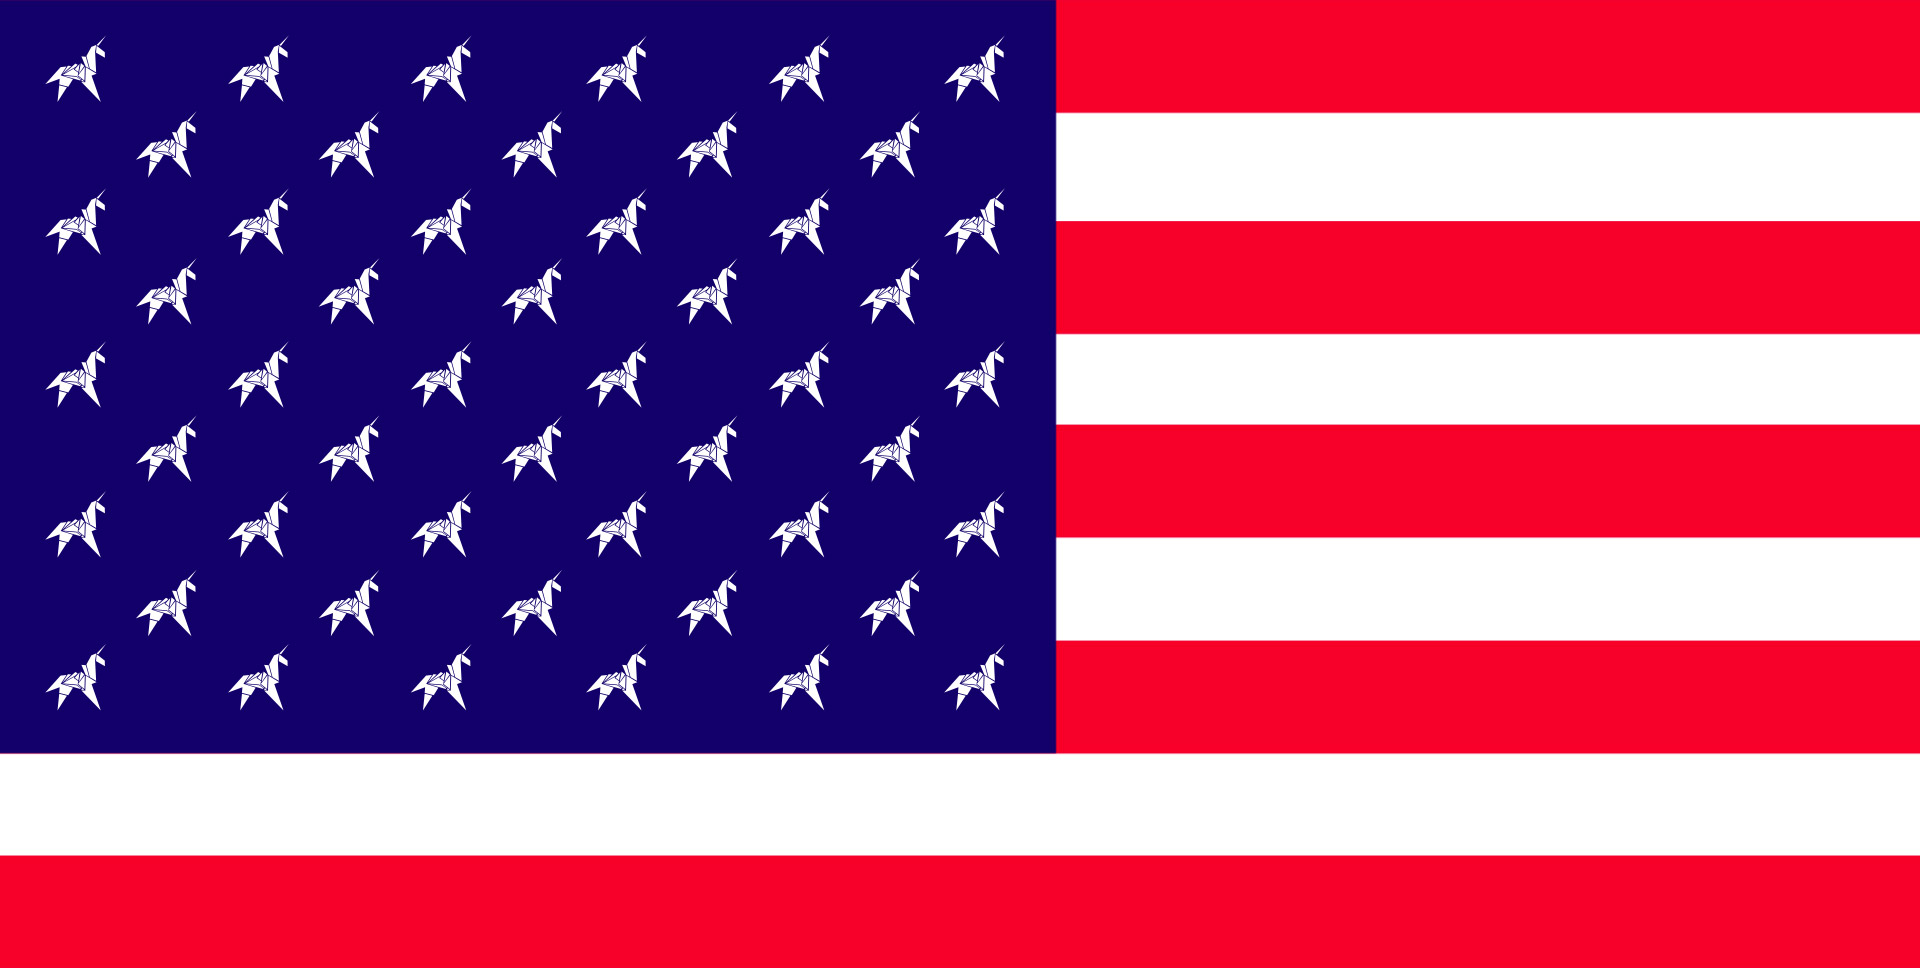 Illustration of the American flag with unicorns inplace of the stars